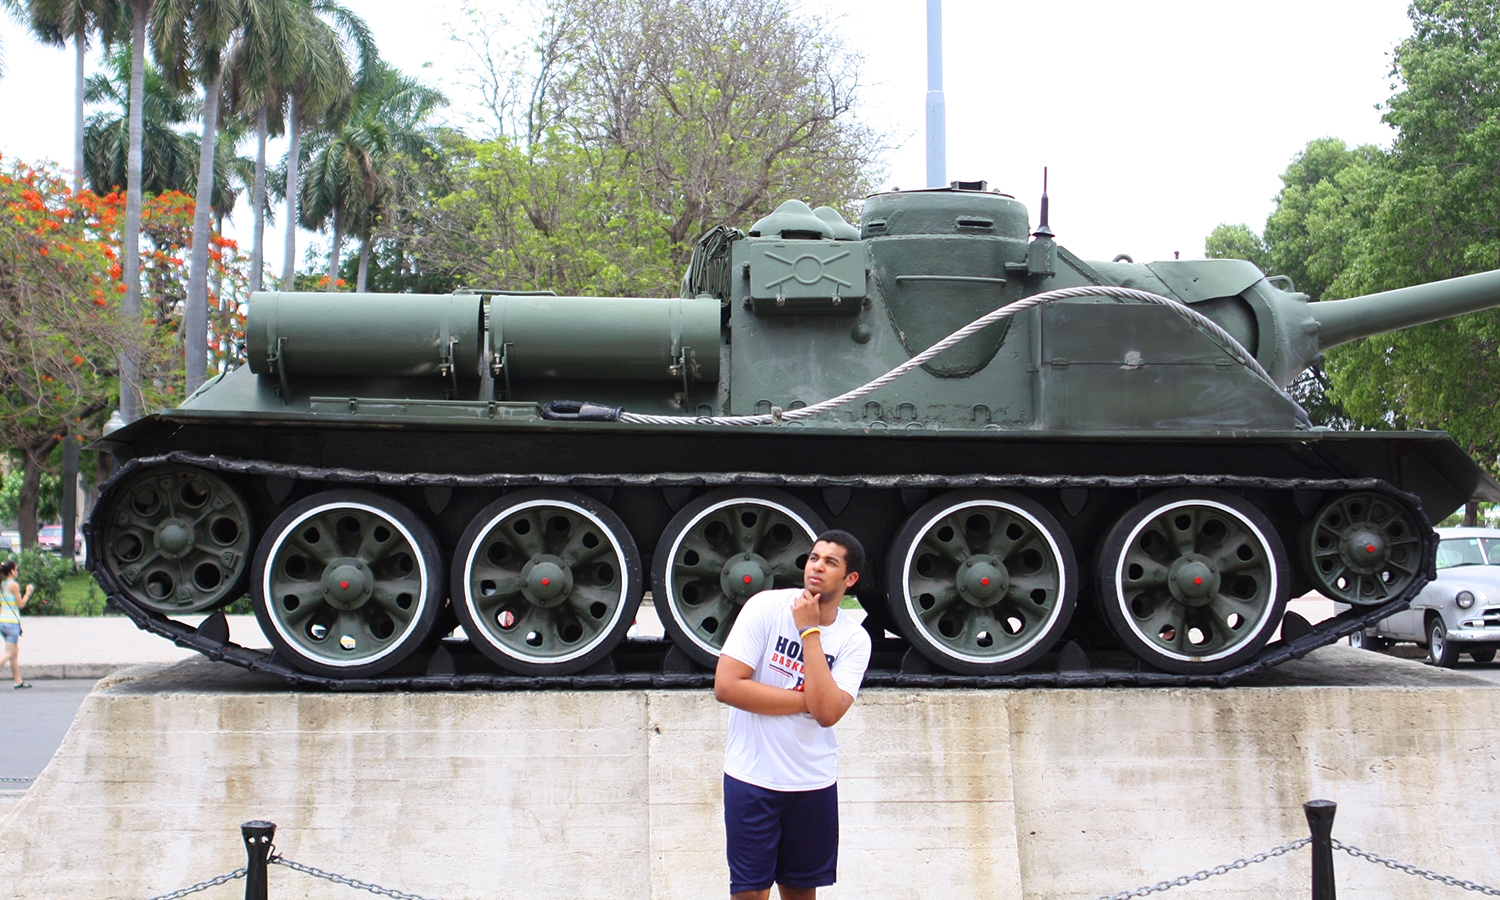 Isaiah Young '18 poses with a military tank at the Granma Boat Memorial.